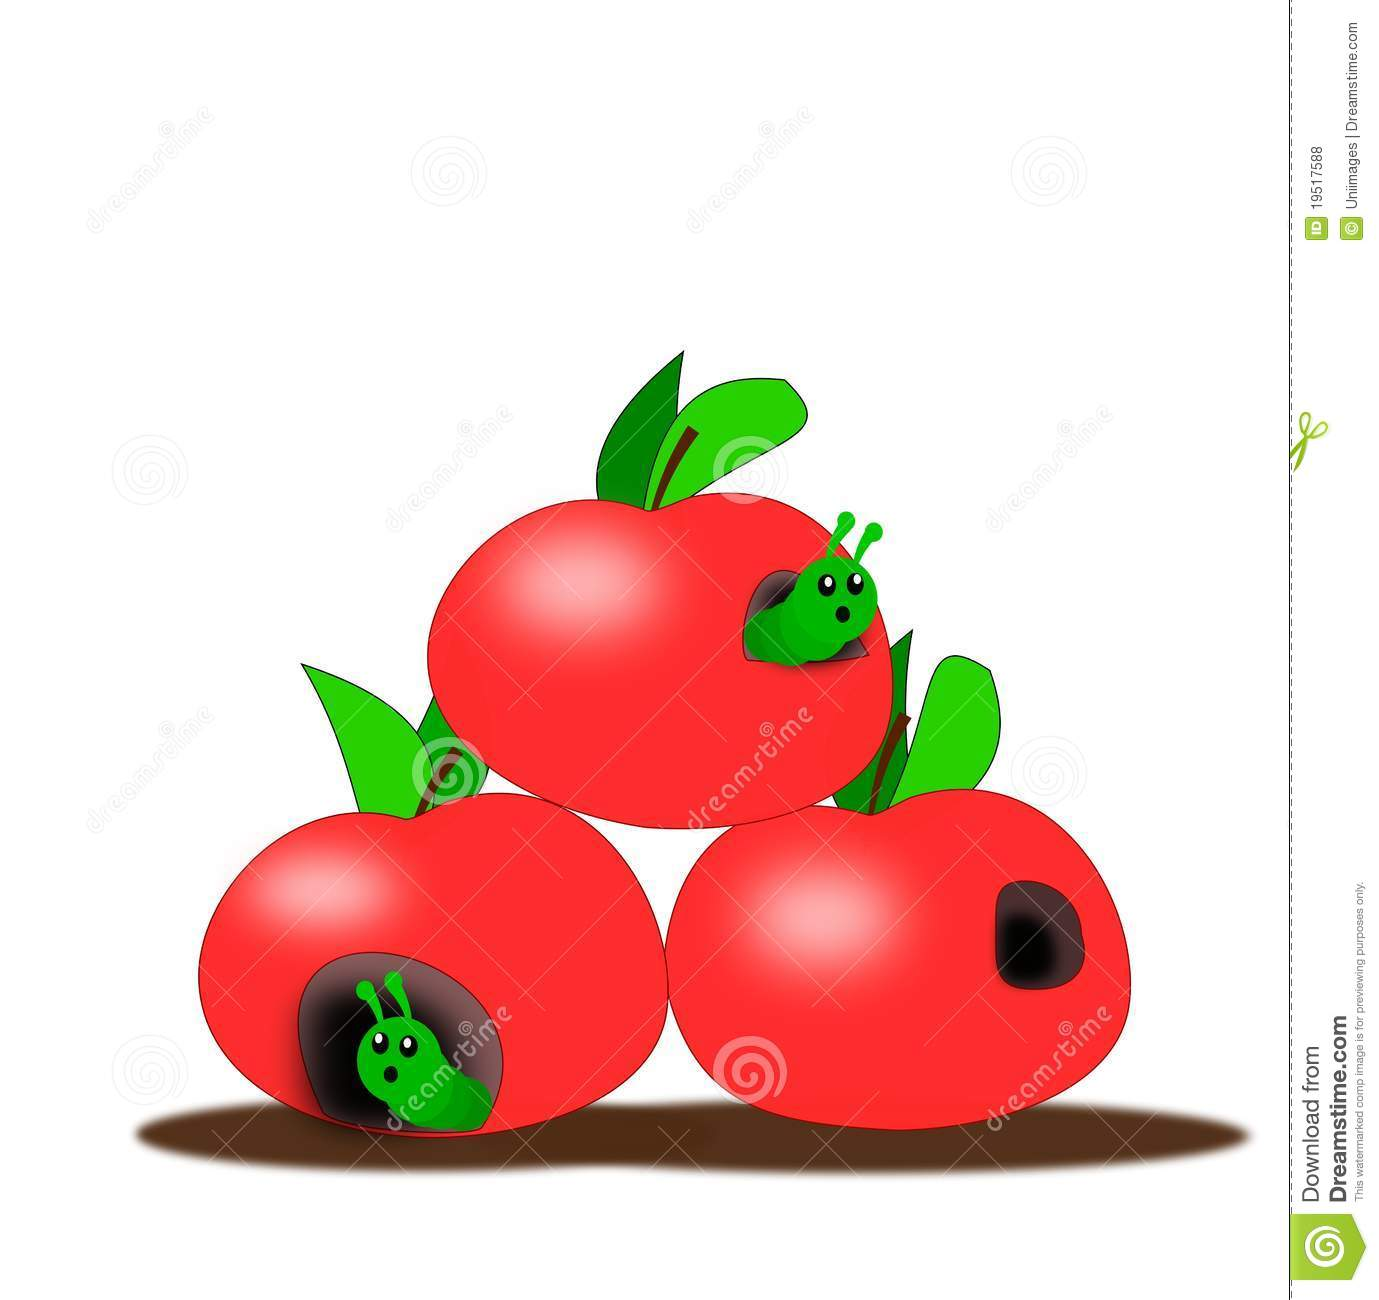 Apples With Worms Royalty Free Stock Photos - Image: 19517588